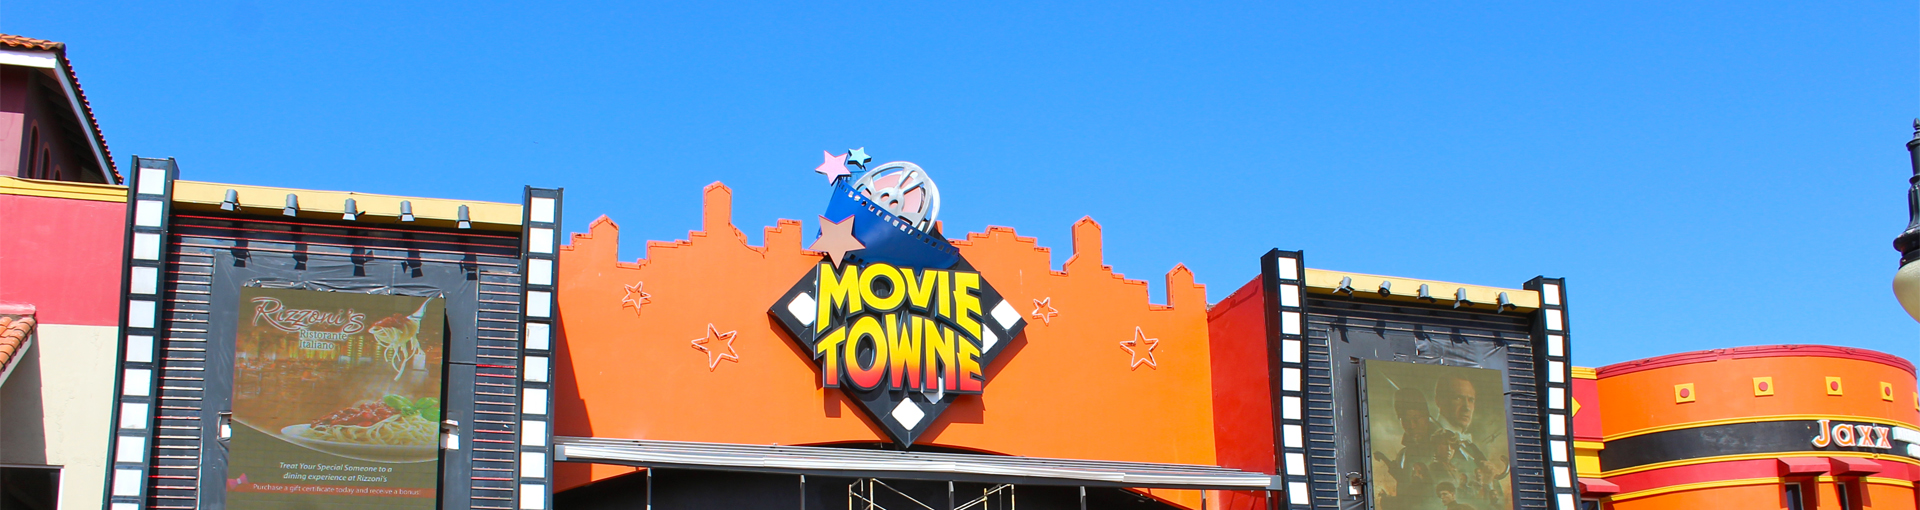 Movietowne Mall, Invader's Bay